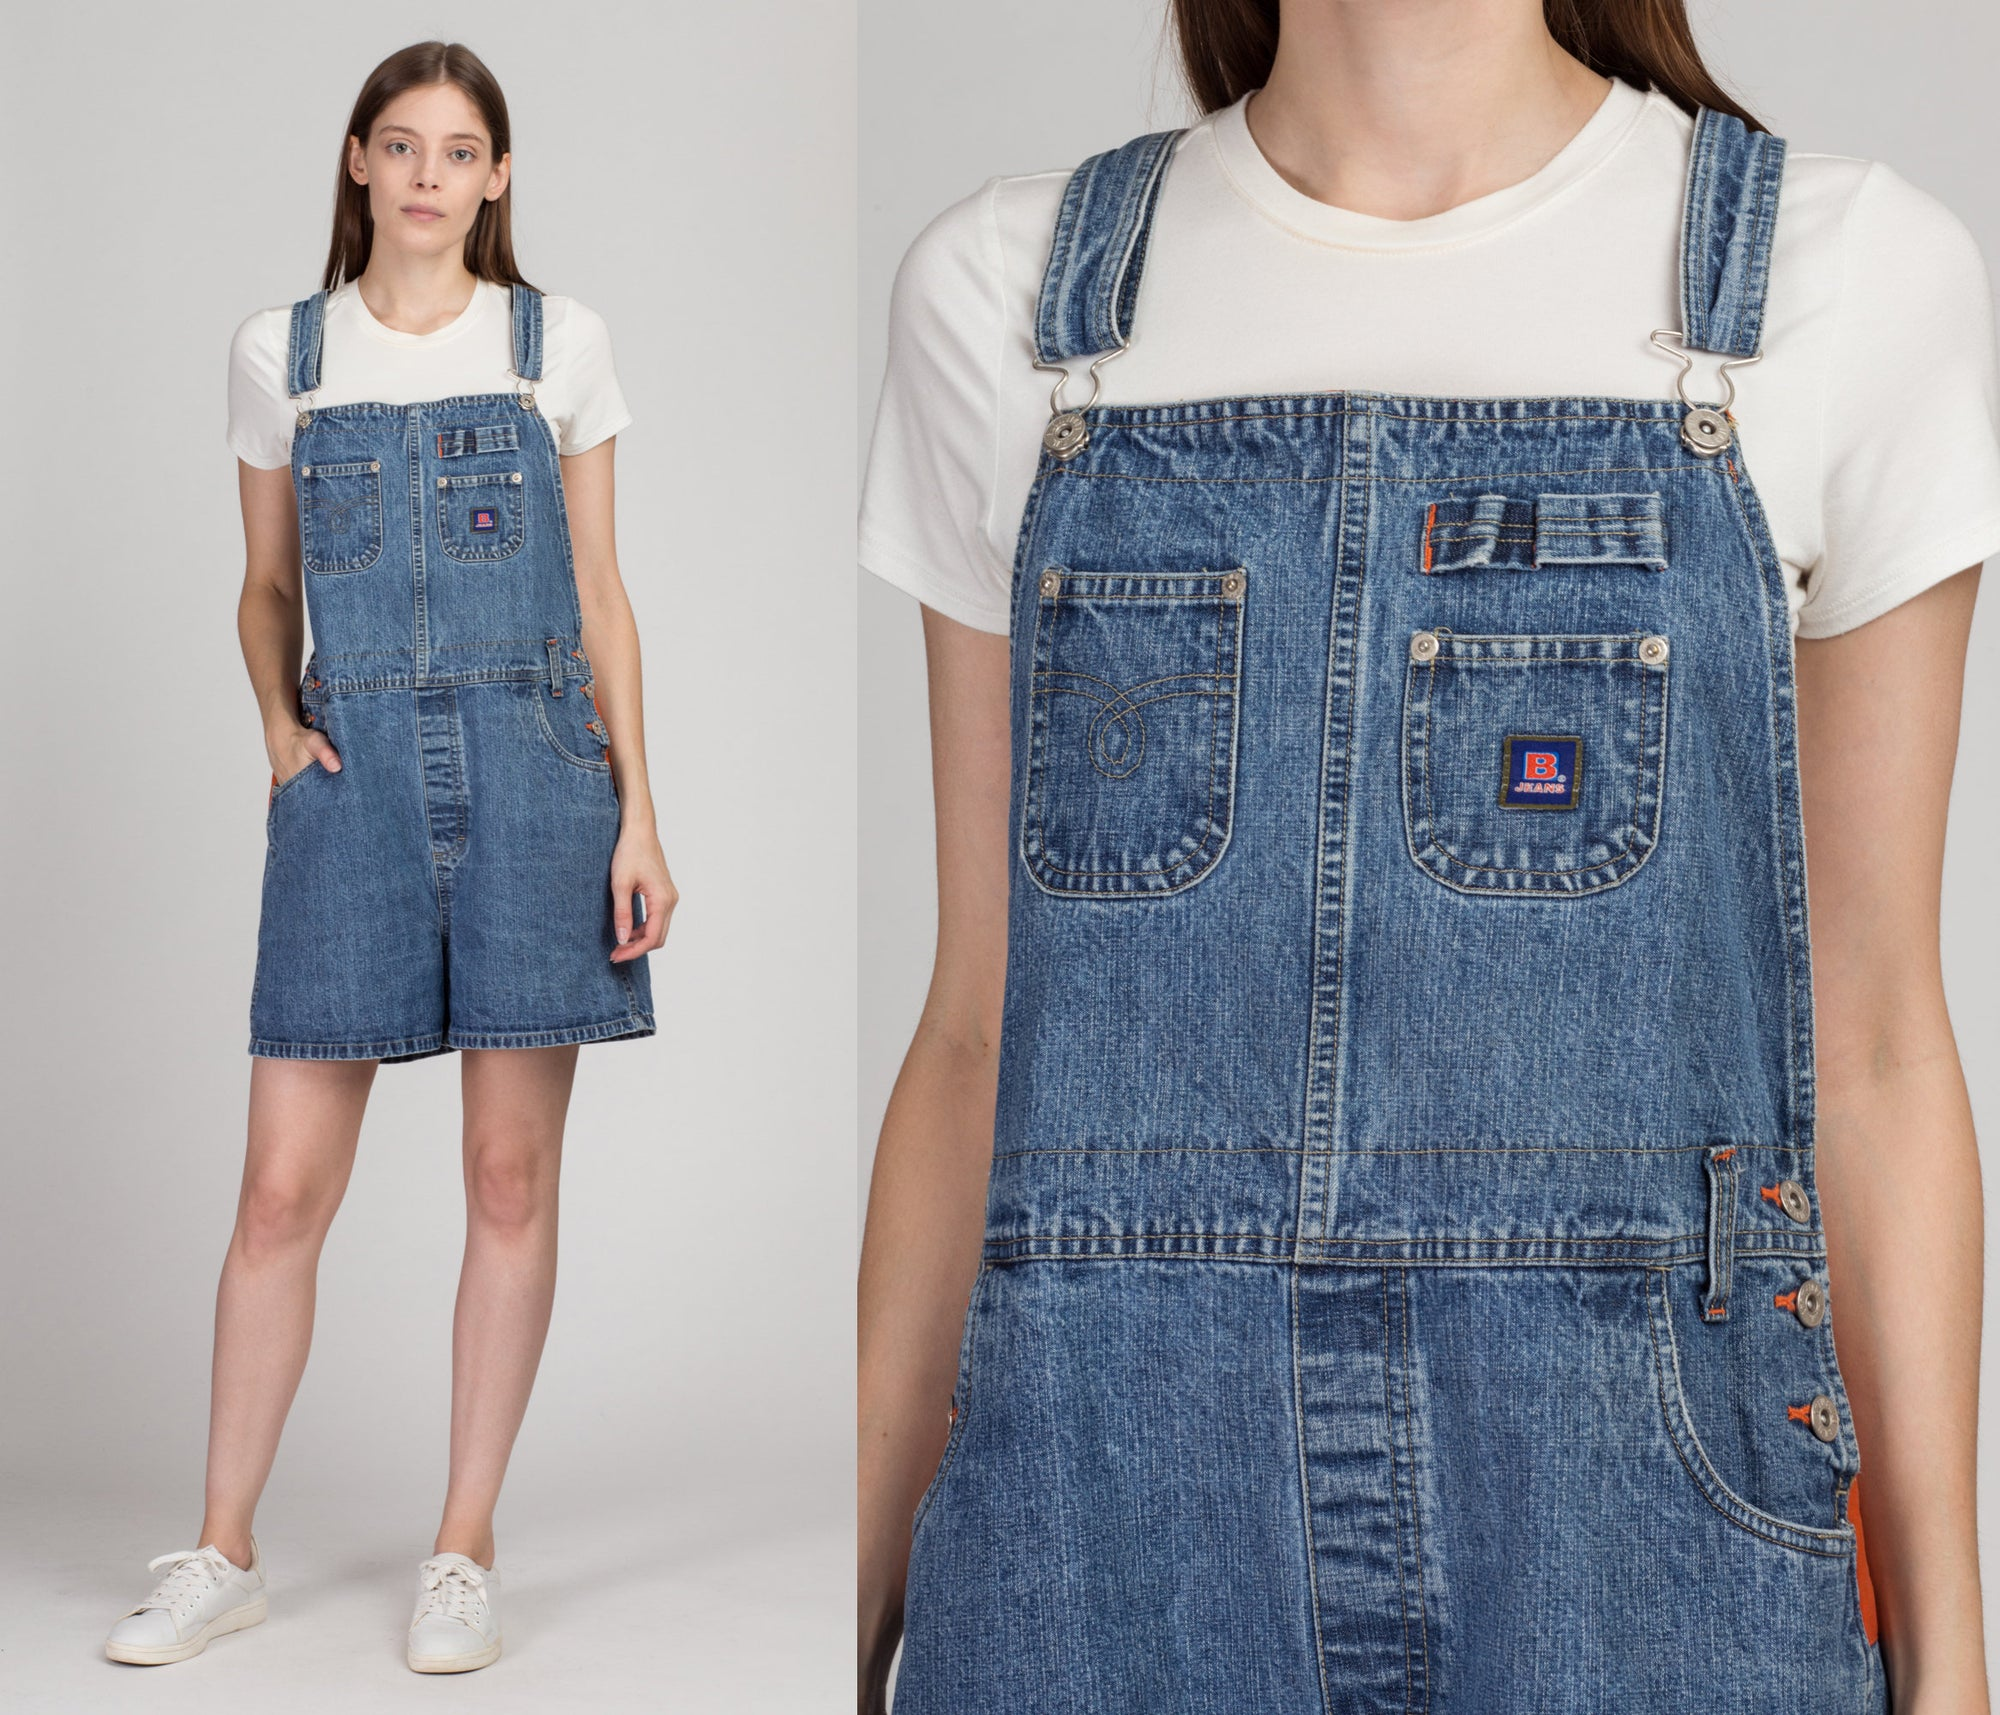 Vintage BUM Equipment Jean Overall Shorts - Extra Large | 90s Y2K Denim Orange Trim Romper Shortalls